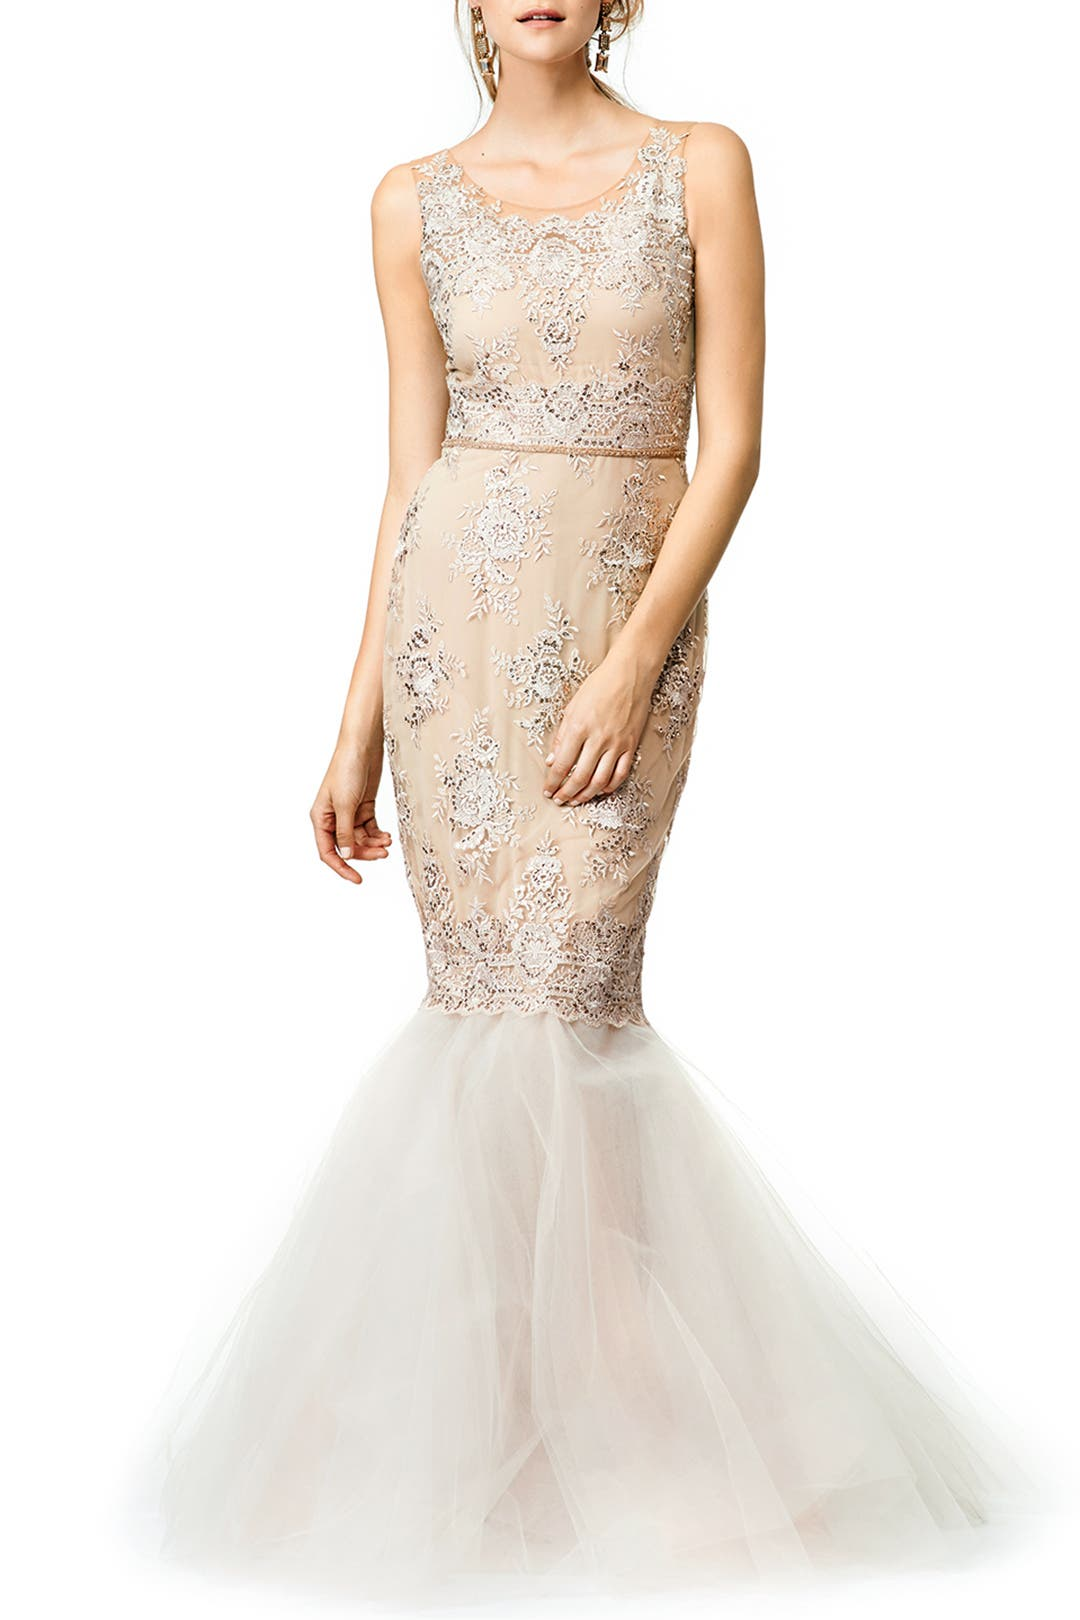 Only Rose Gown By Marchesa Notte For 155 175 Rent